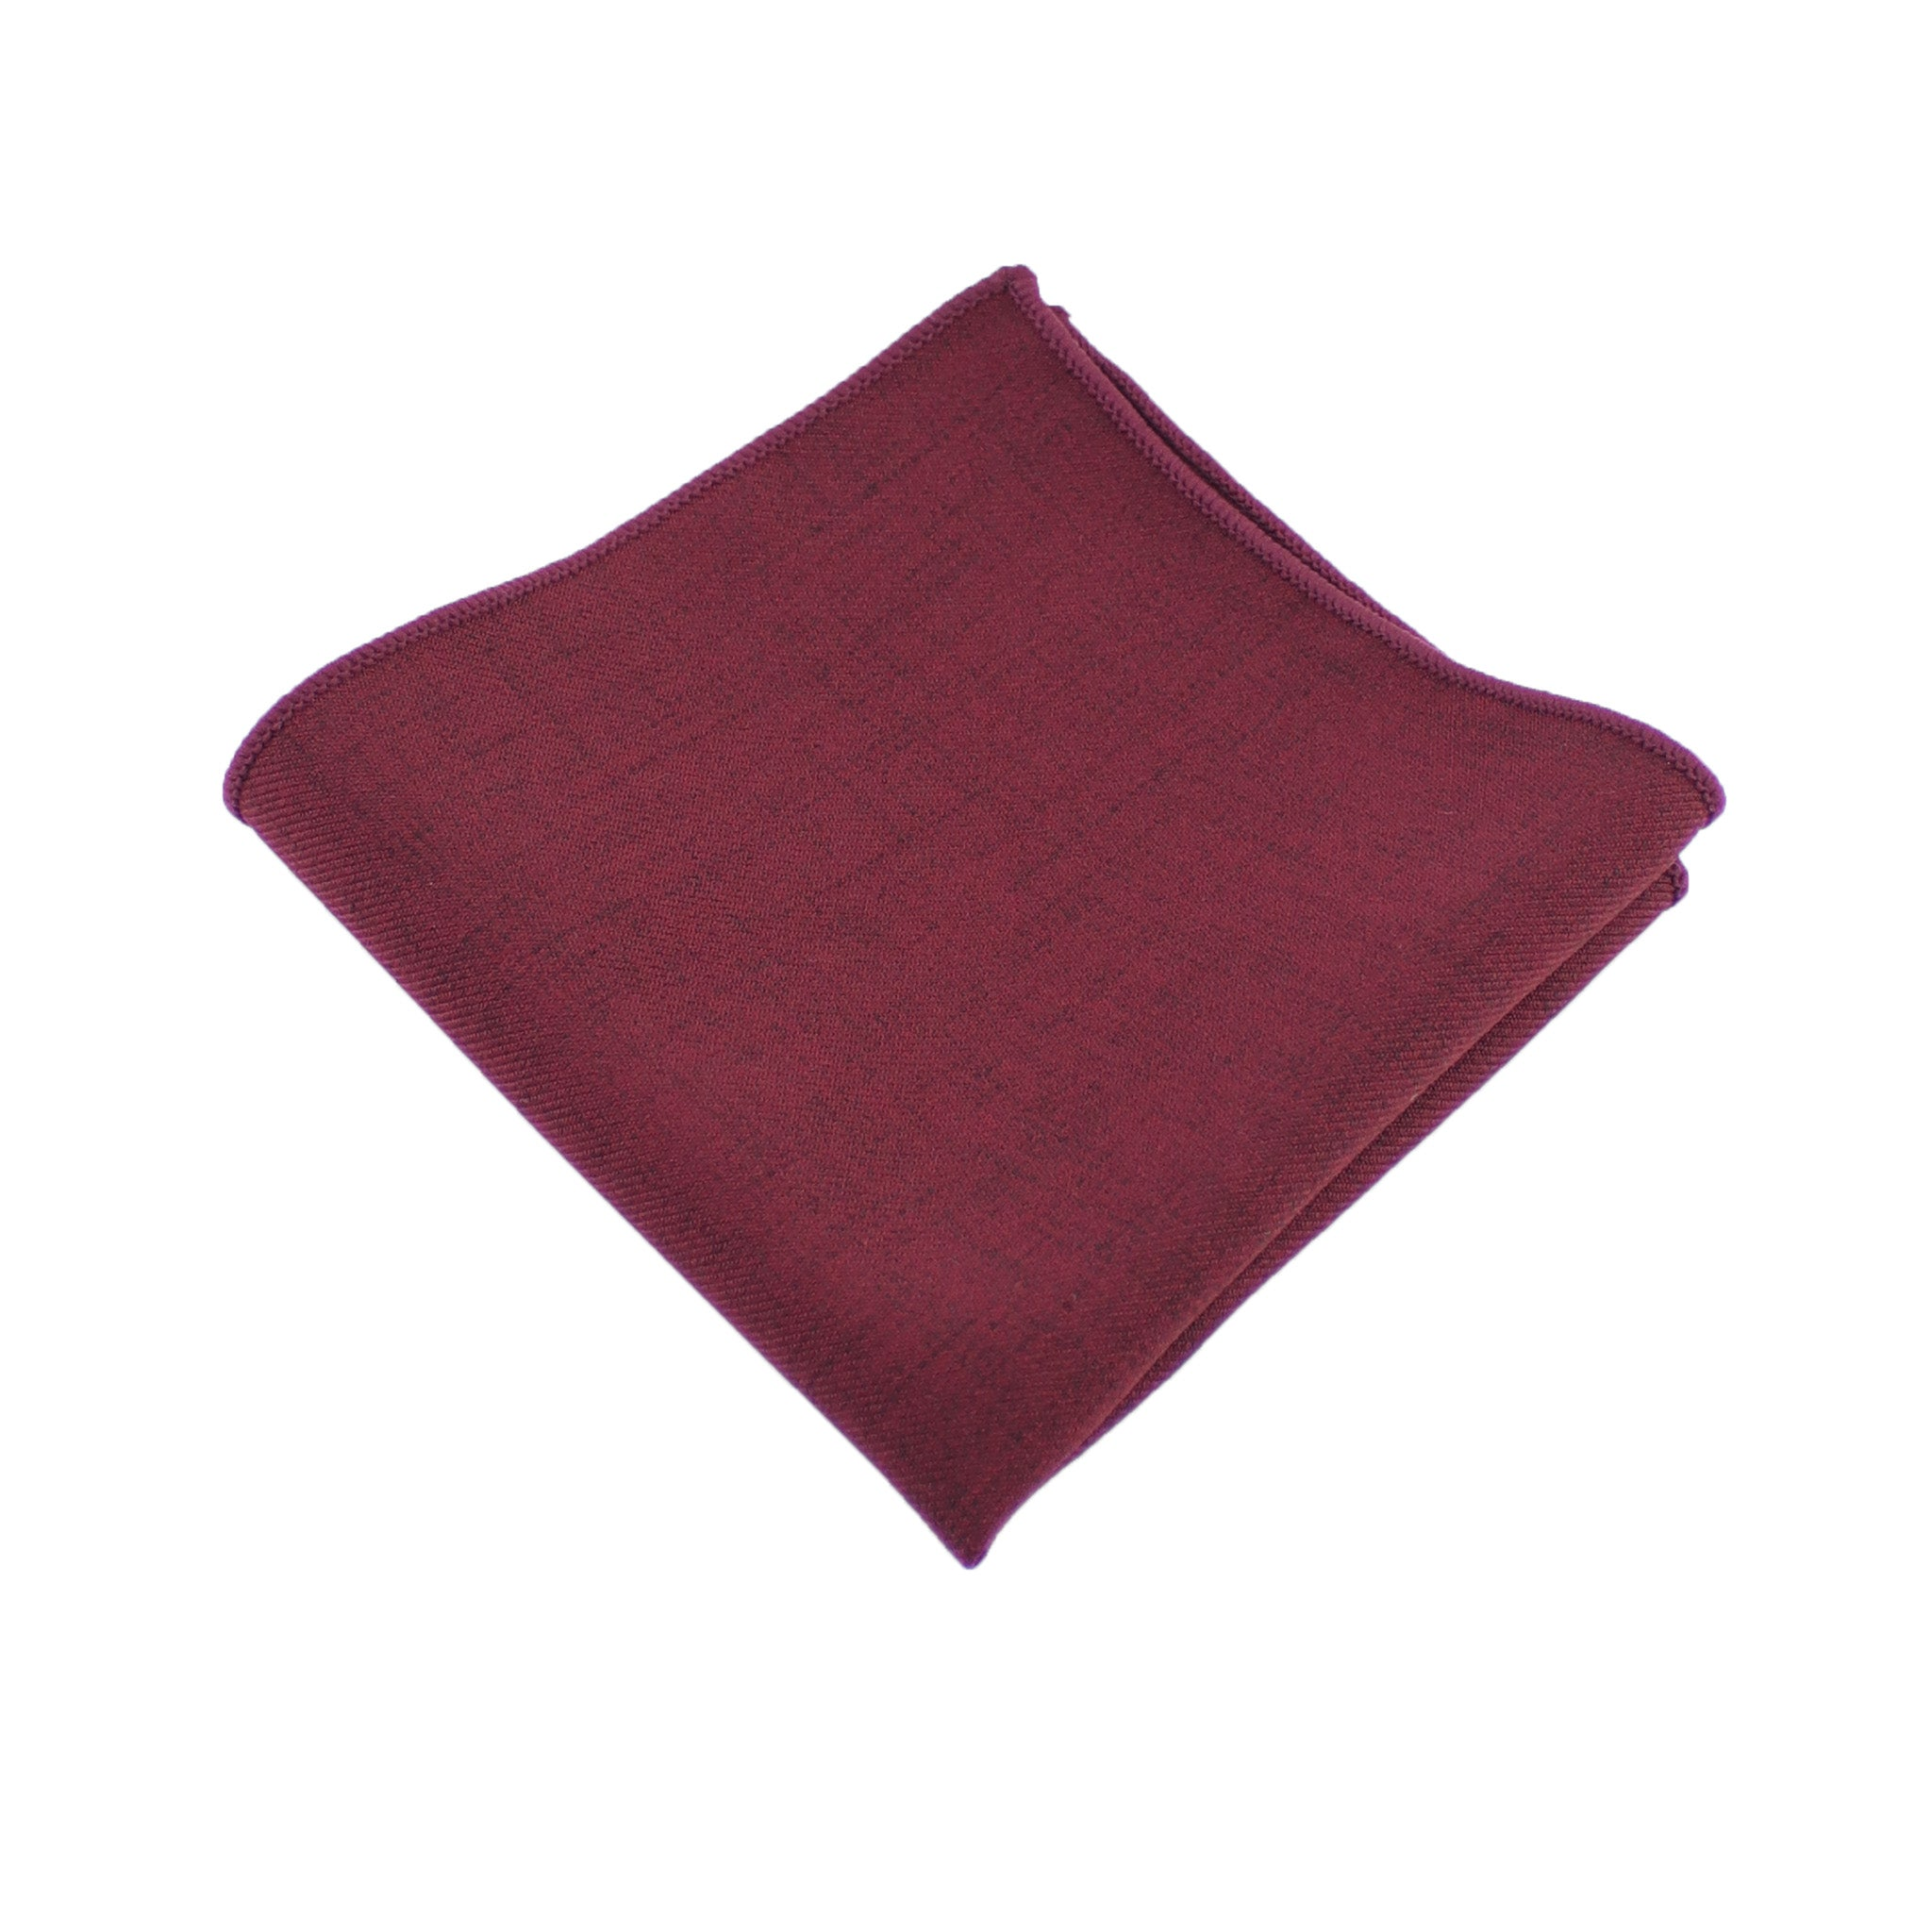 Cotton Burgundy Pocket Square from DIBI